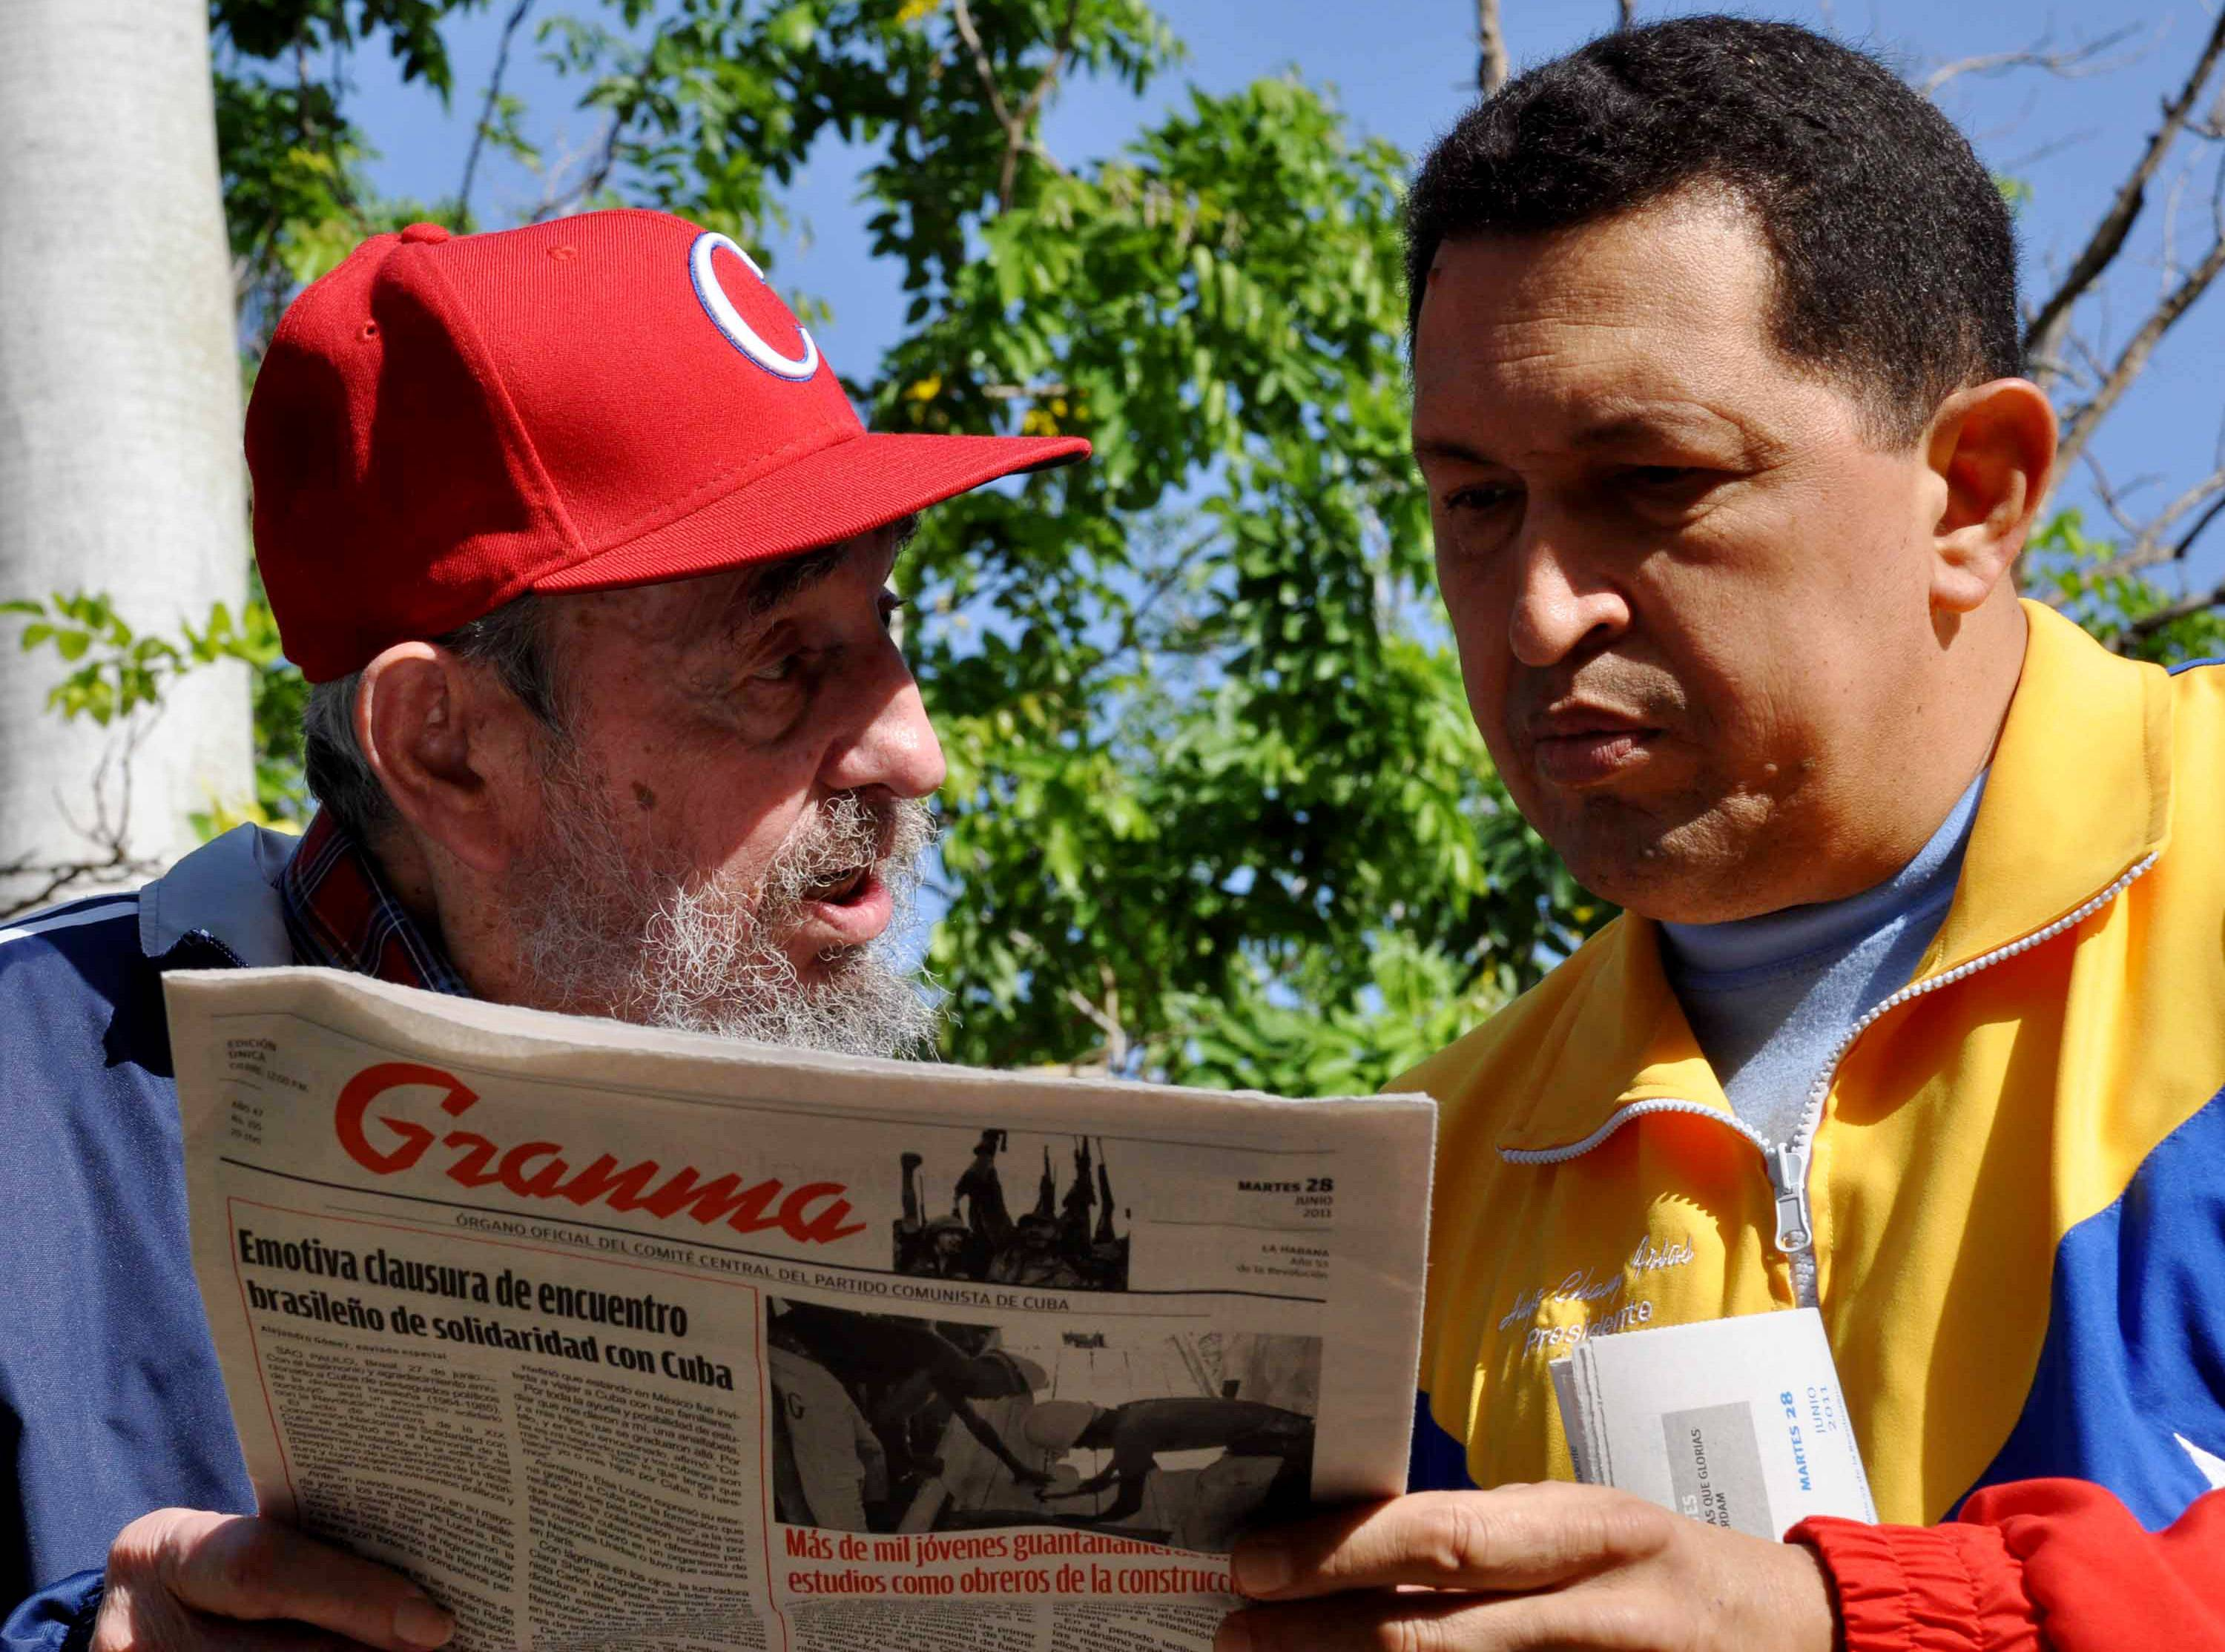 Venezuelan President Hugo Chavez, shown here with Cuba's Fidel Castro, revealed that he is fighting cancer.